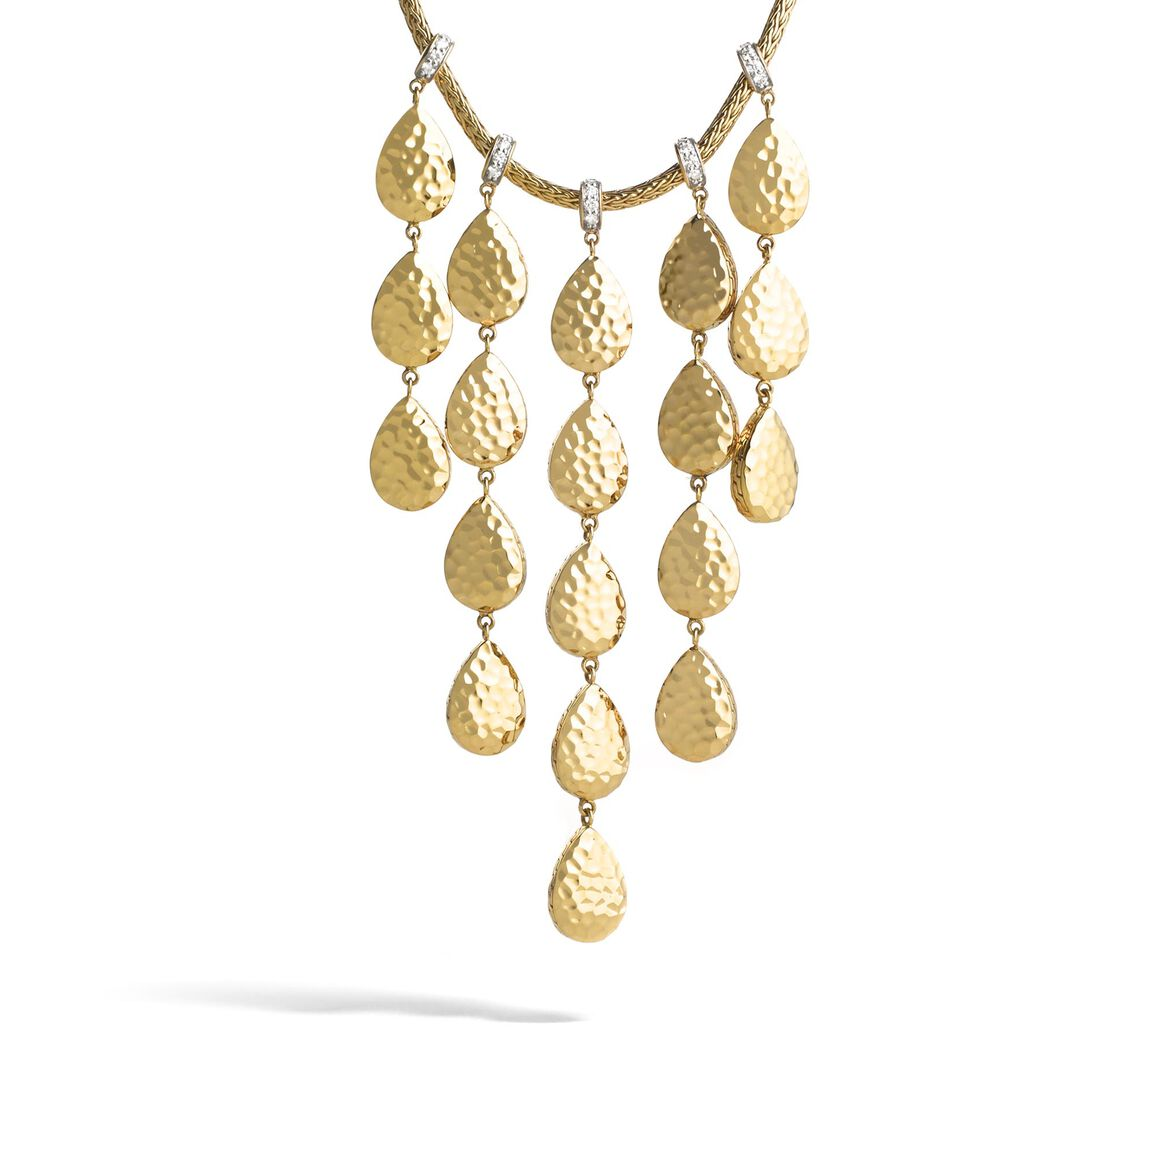 Classic Chain Drop Necklace in Hammered 18K Gold, Diamonds